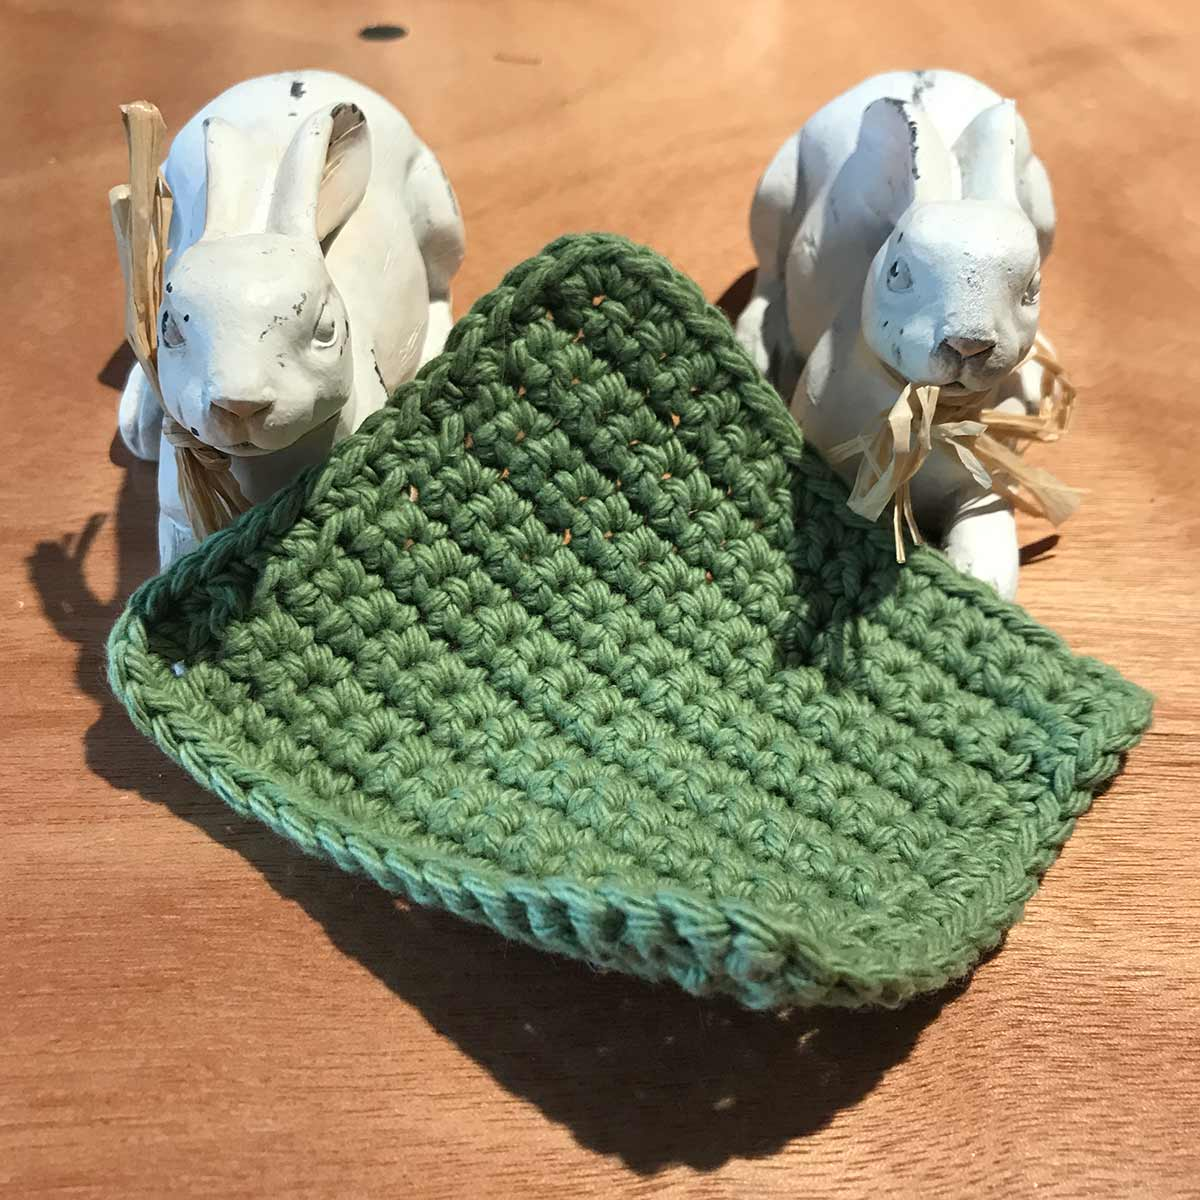 Olive green crochet coaster on table between two rabbits.